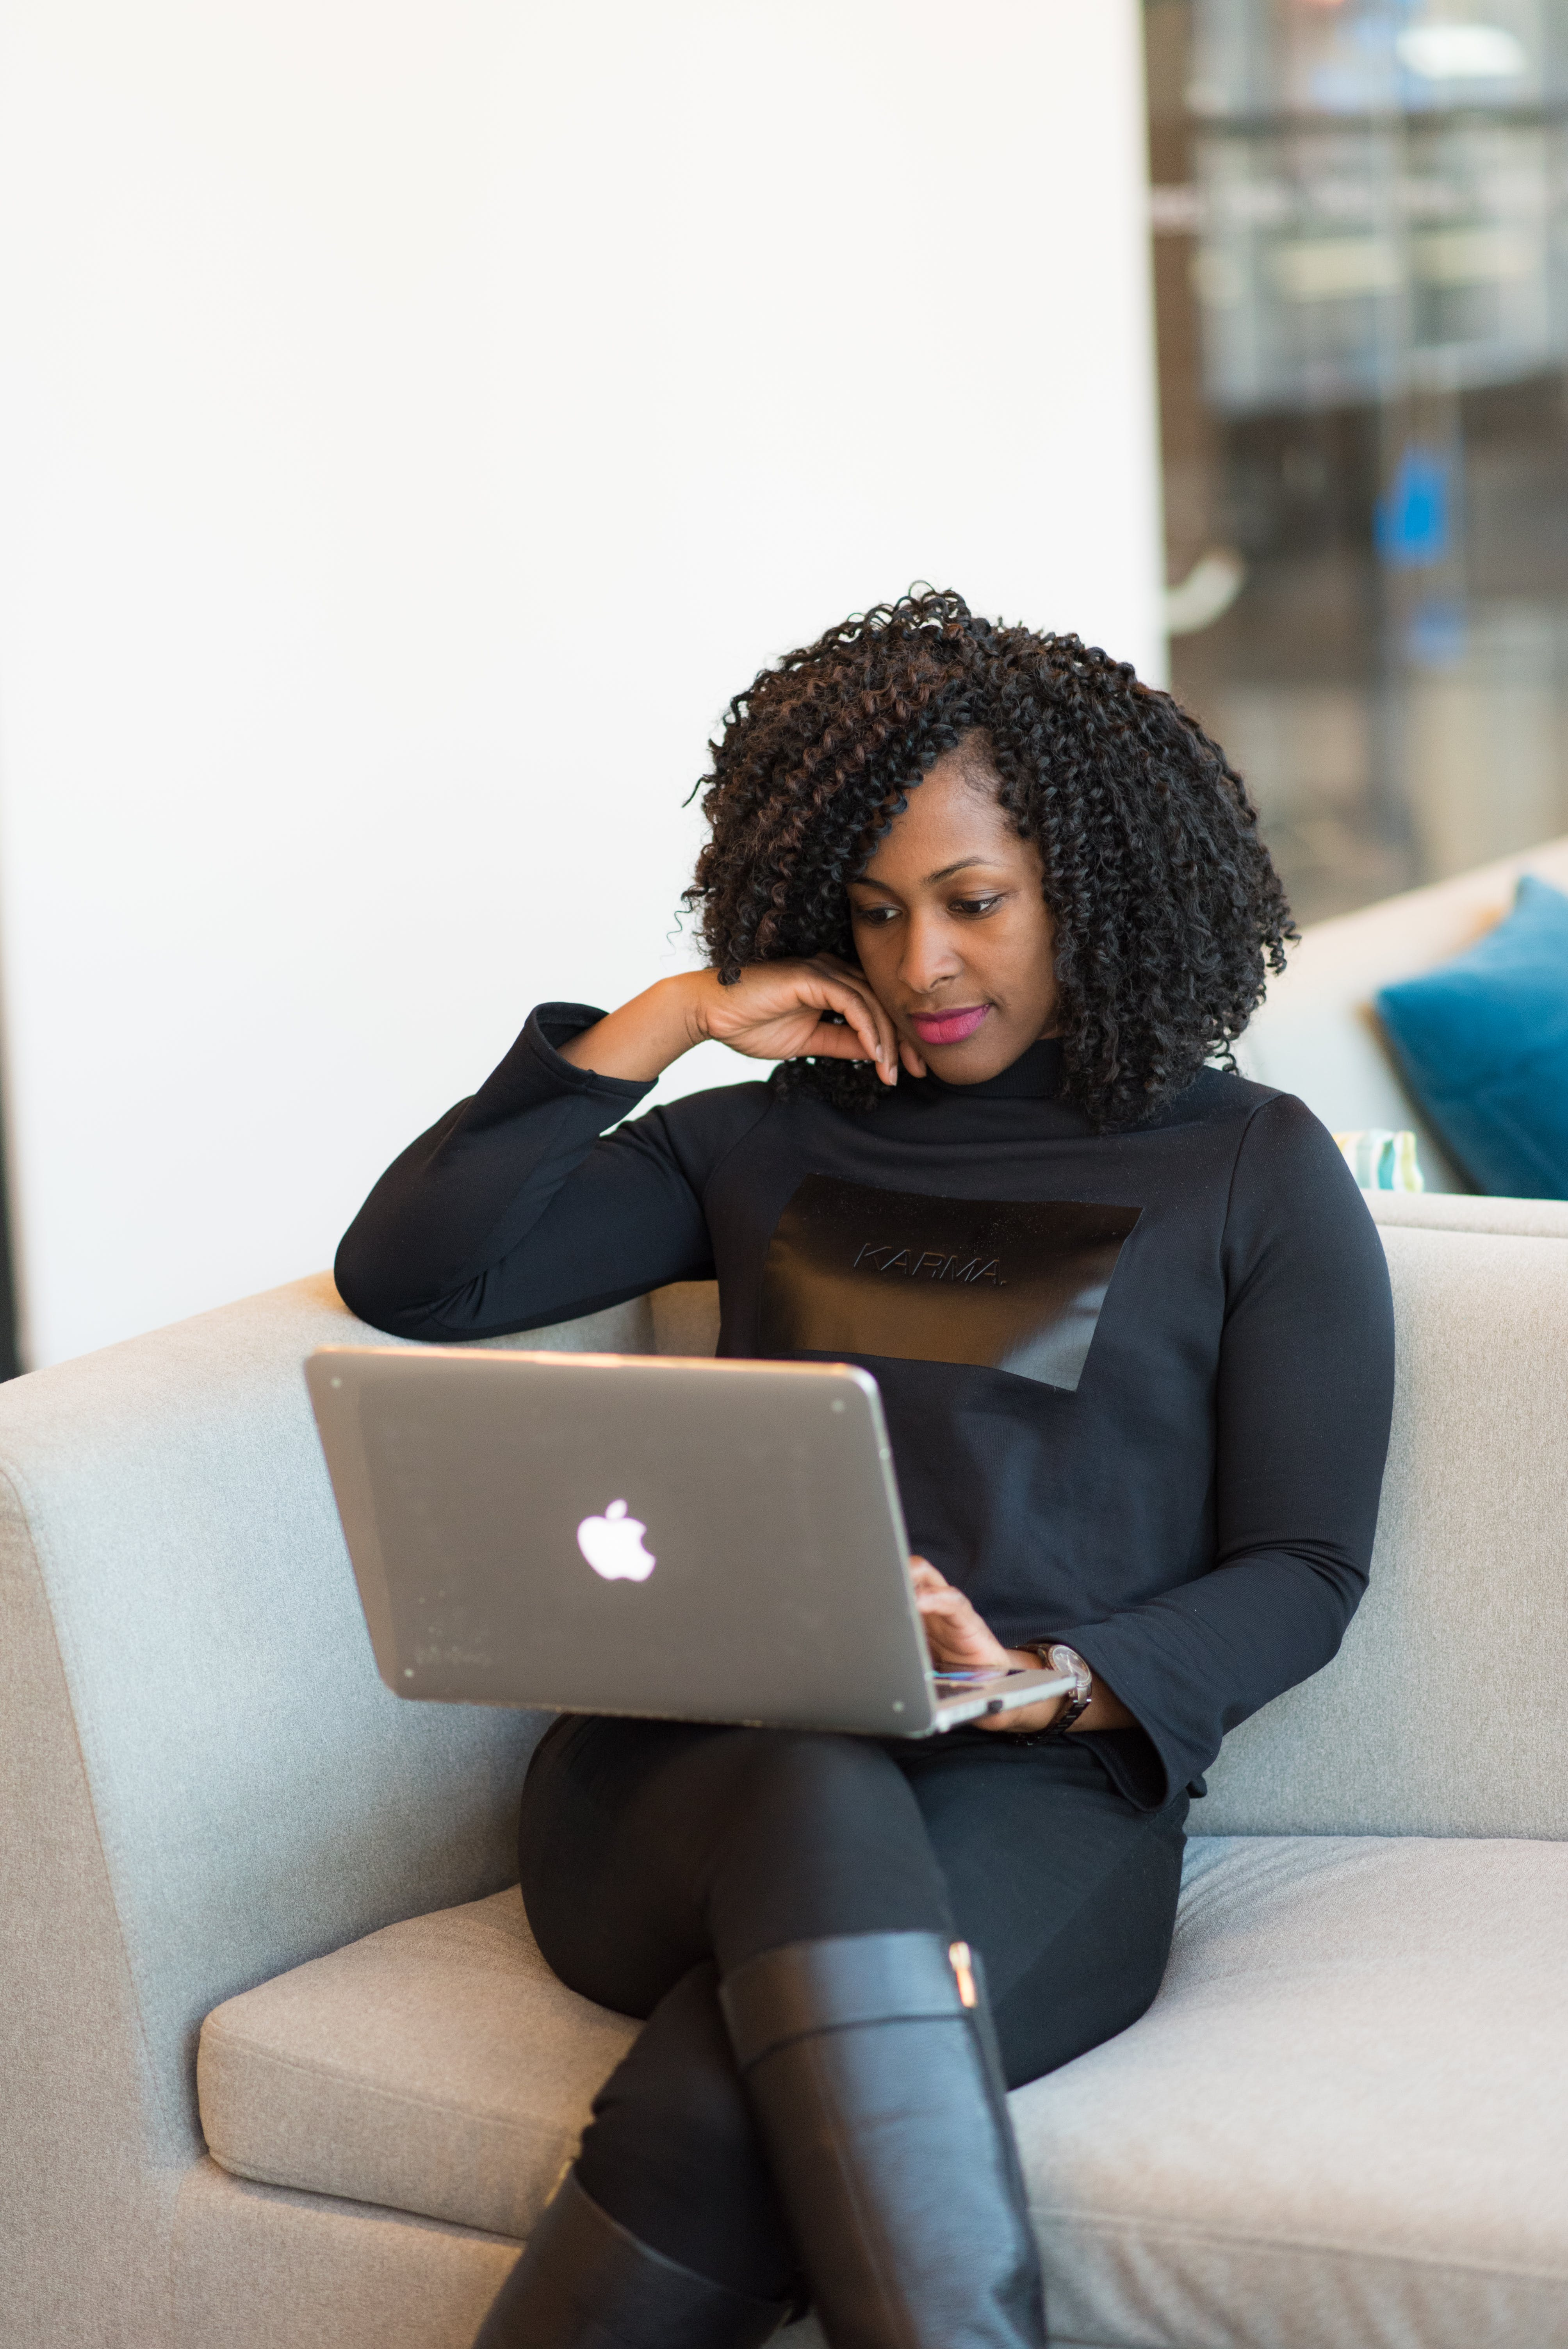 Woman in black outfit with MacBook sitting on a couch.